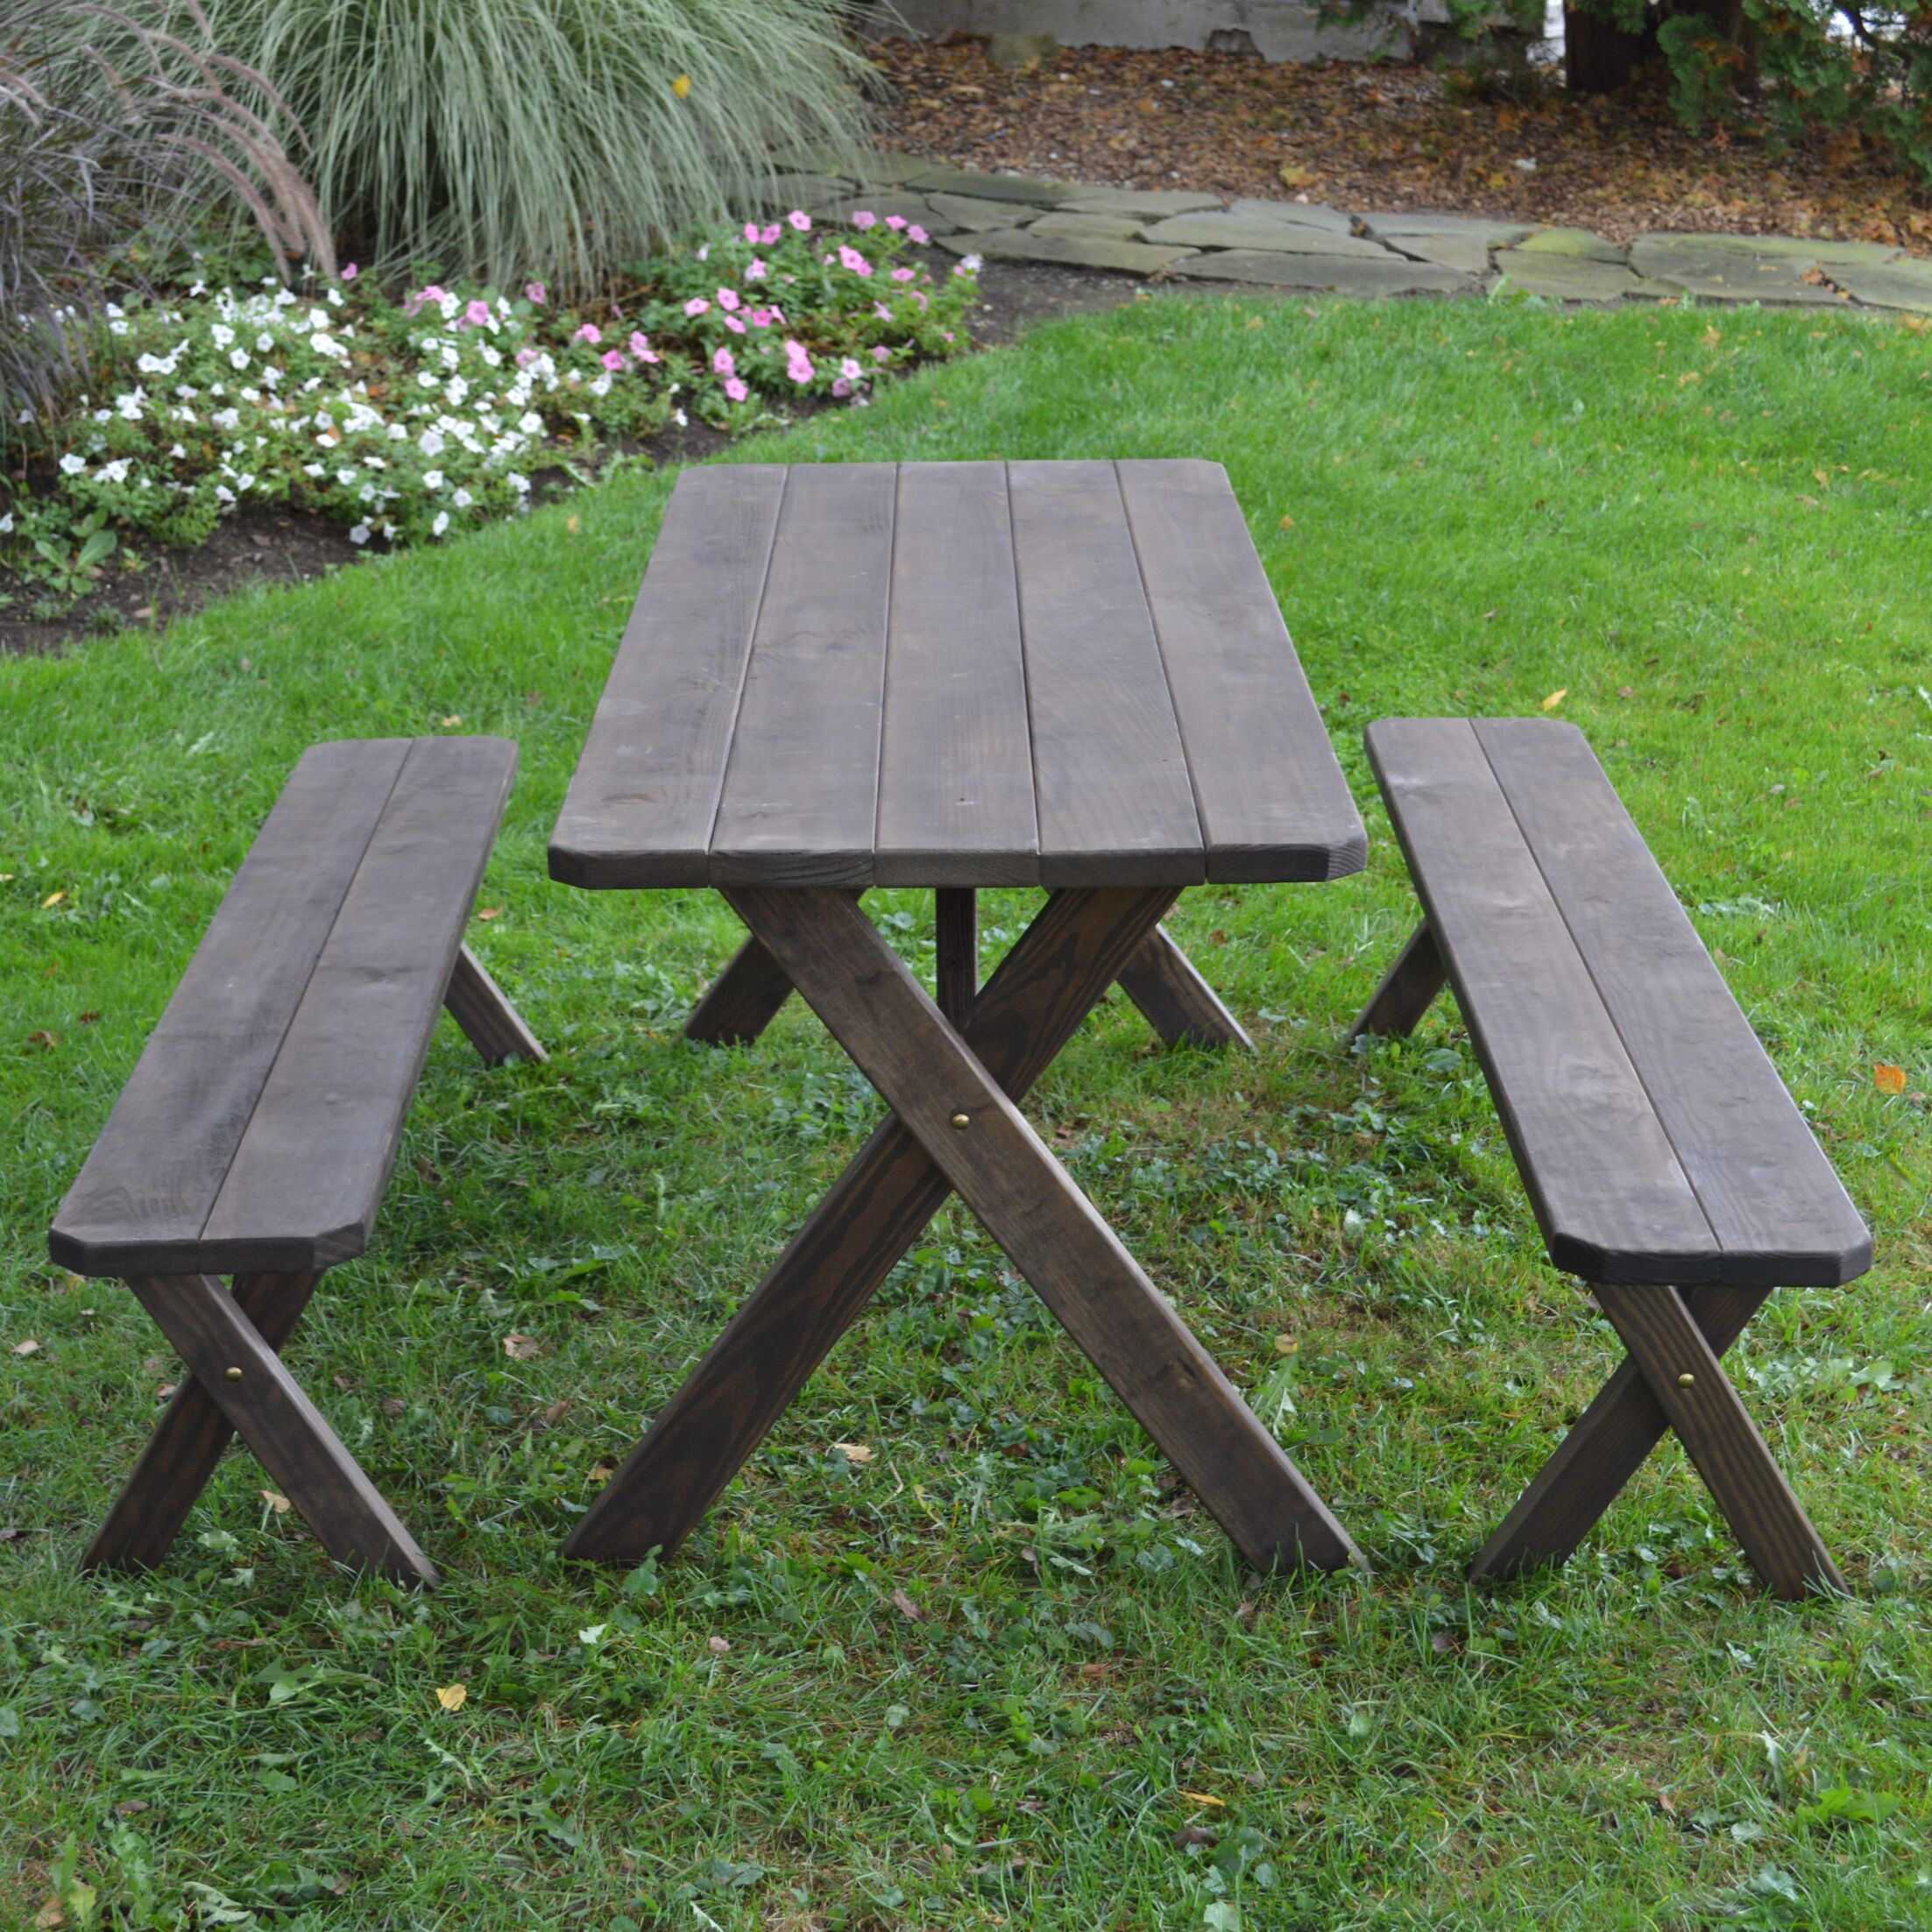 Stockport Pine Cross-leg Picnic Table with 2 Benches Finish: Walnut Stain